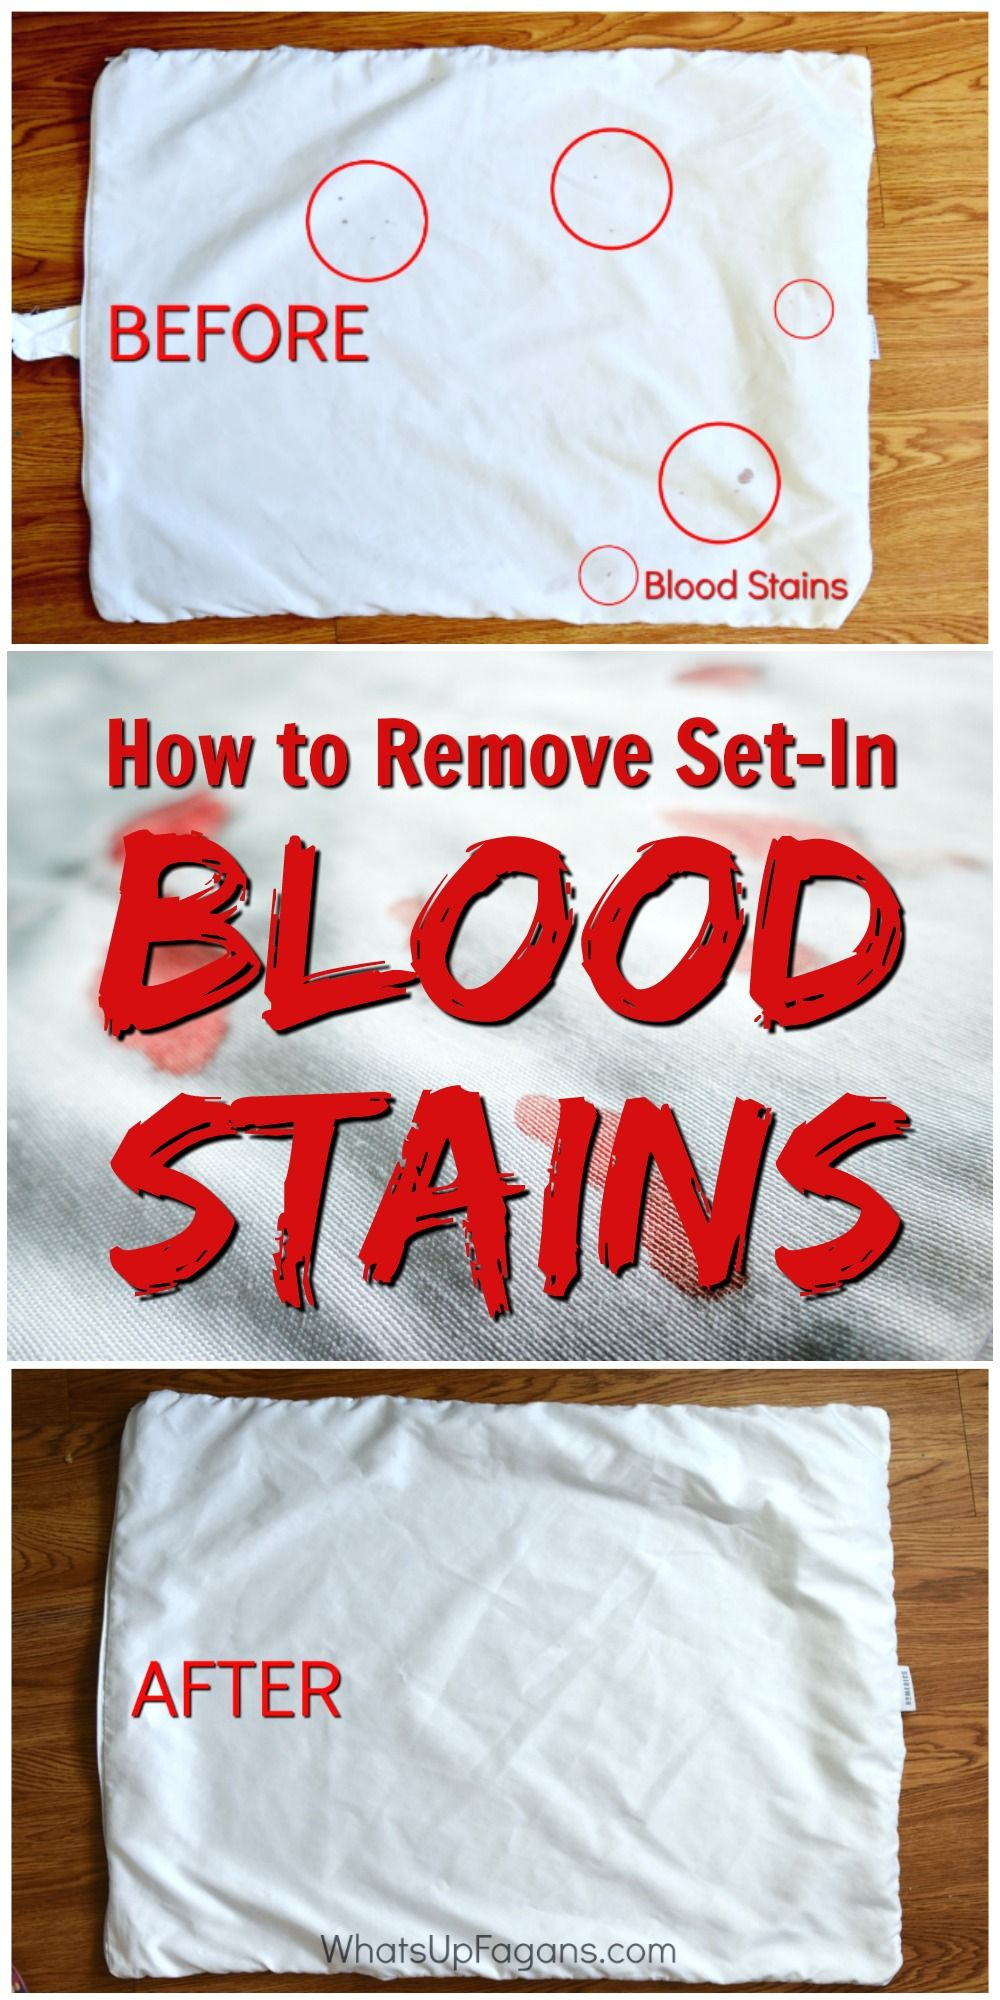 f5292af325e305b740faf4167e0ce5cf - How To Get Dried Period Blood Out Of Clothes